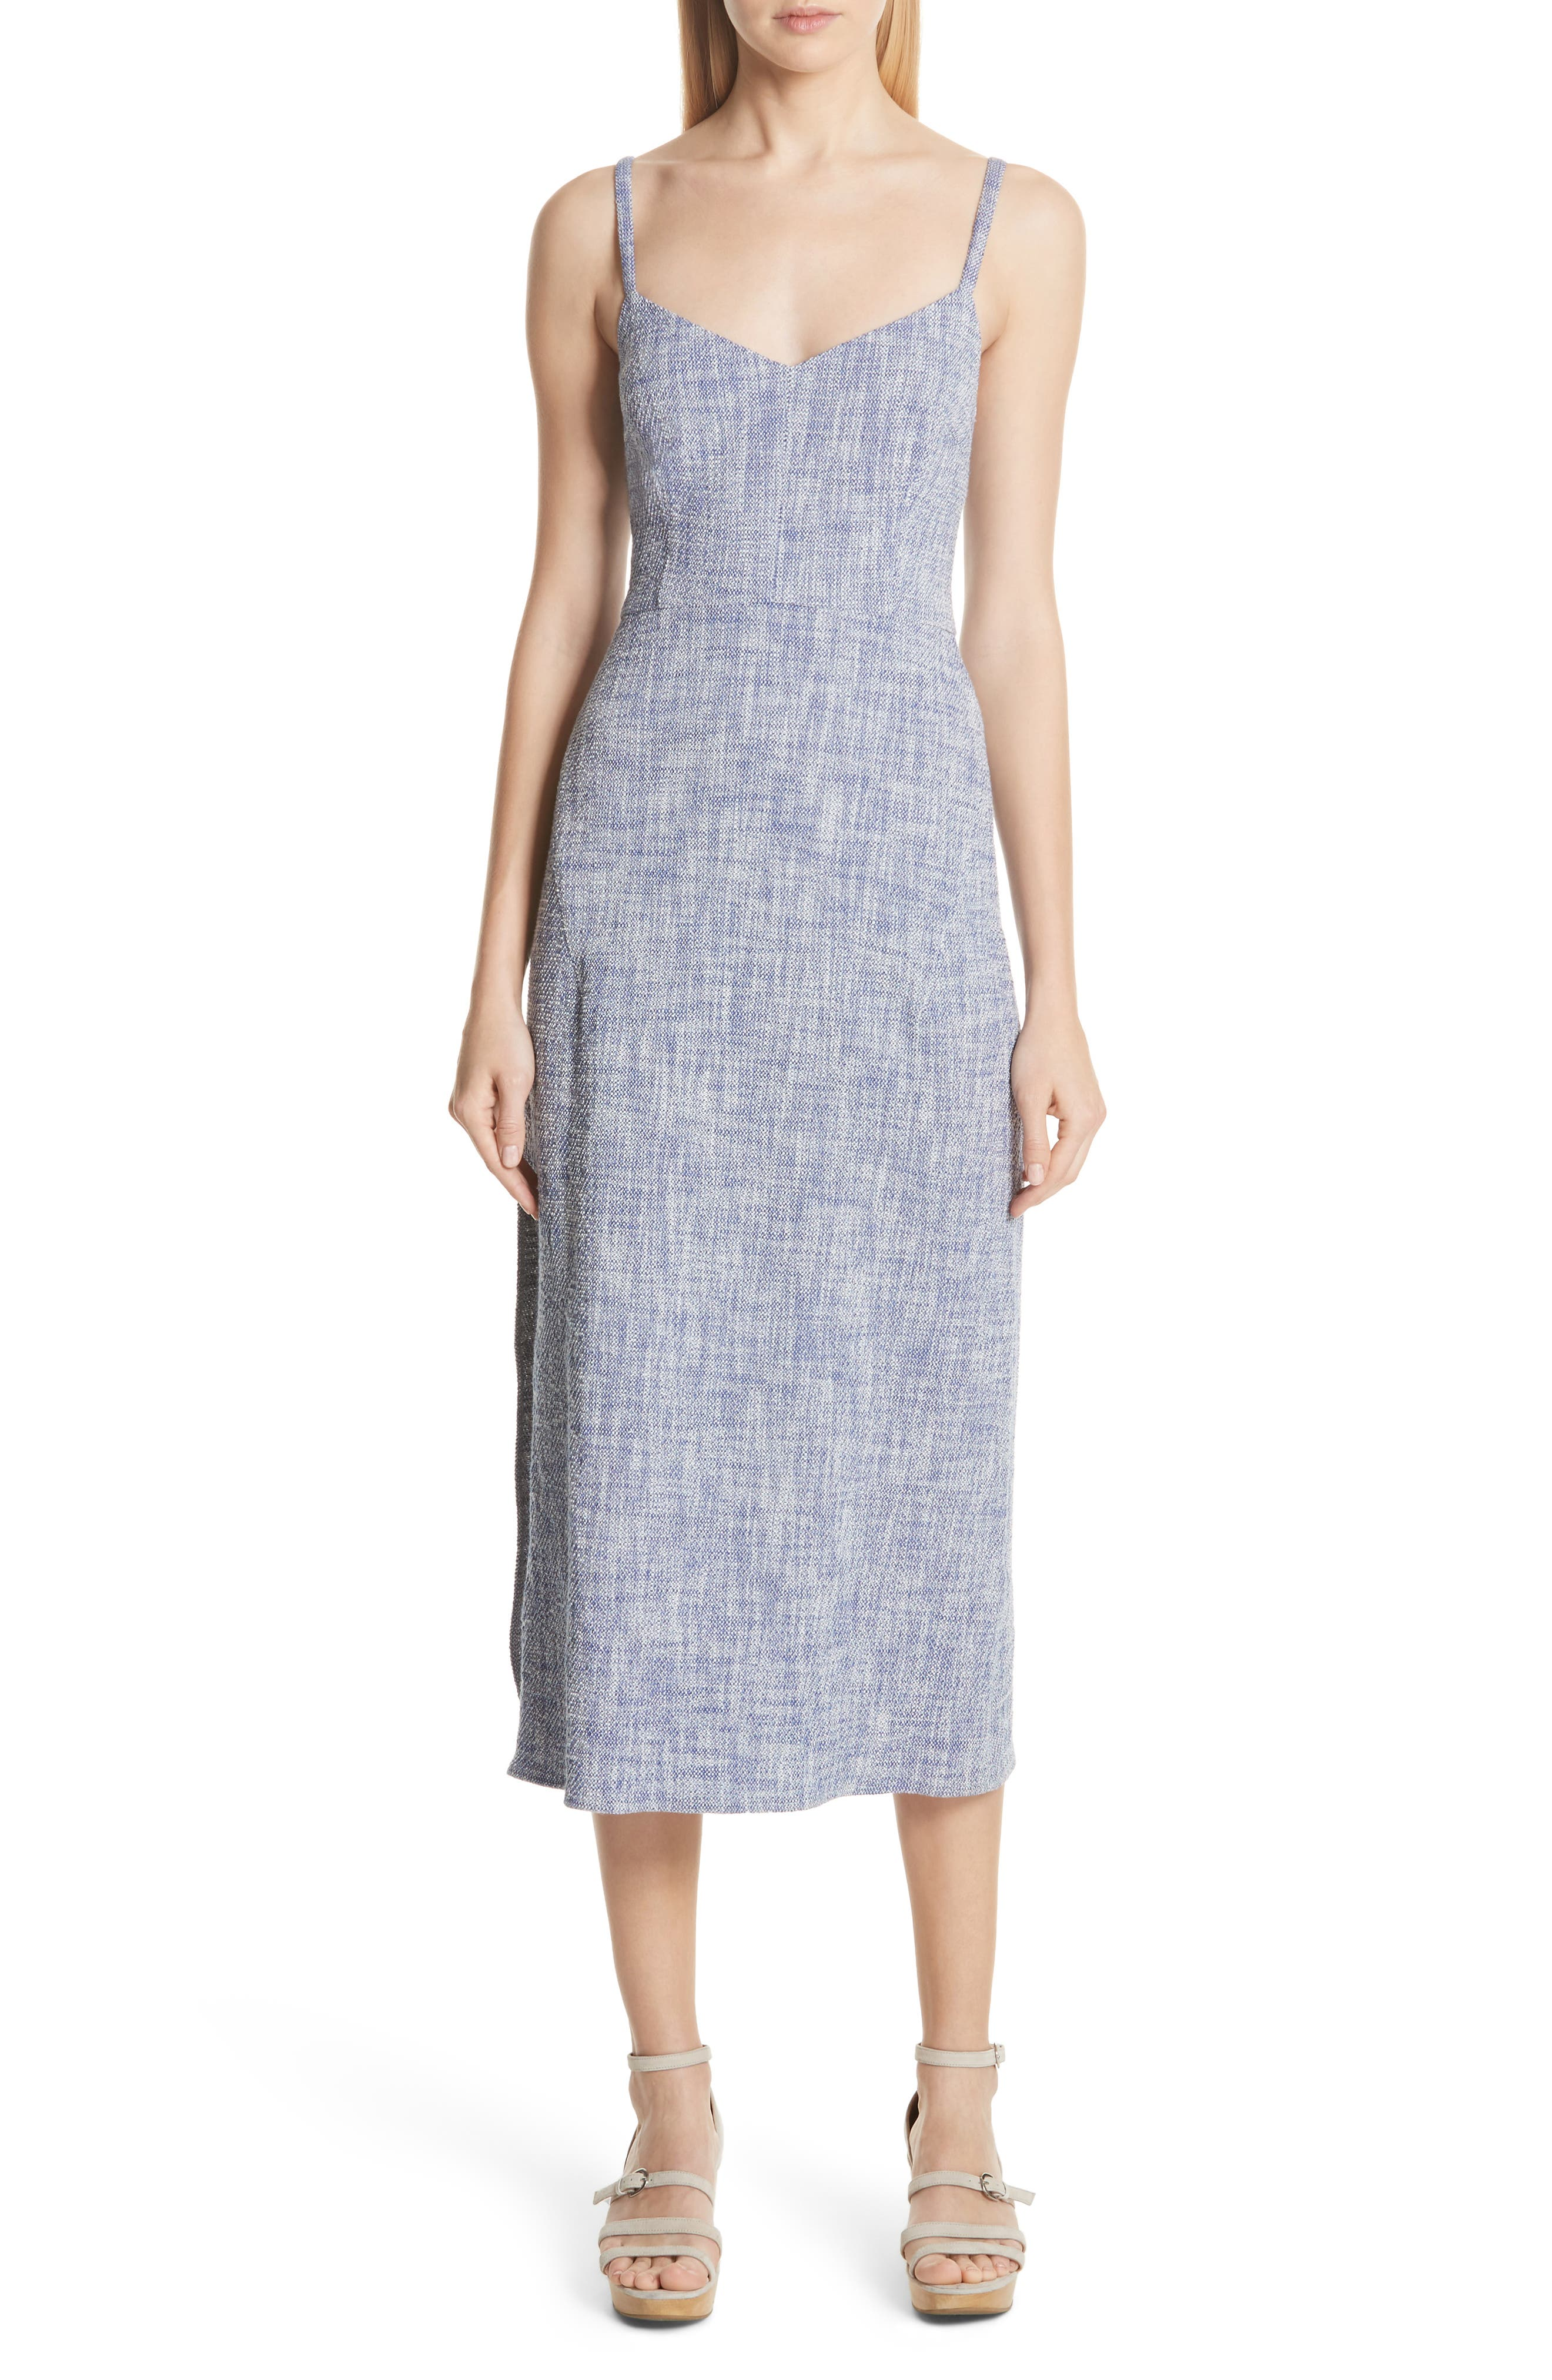 Agitator Midi Dress,                         Main,                         color, BLUE